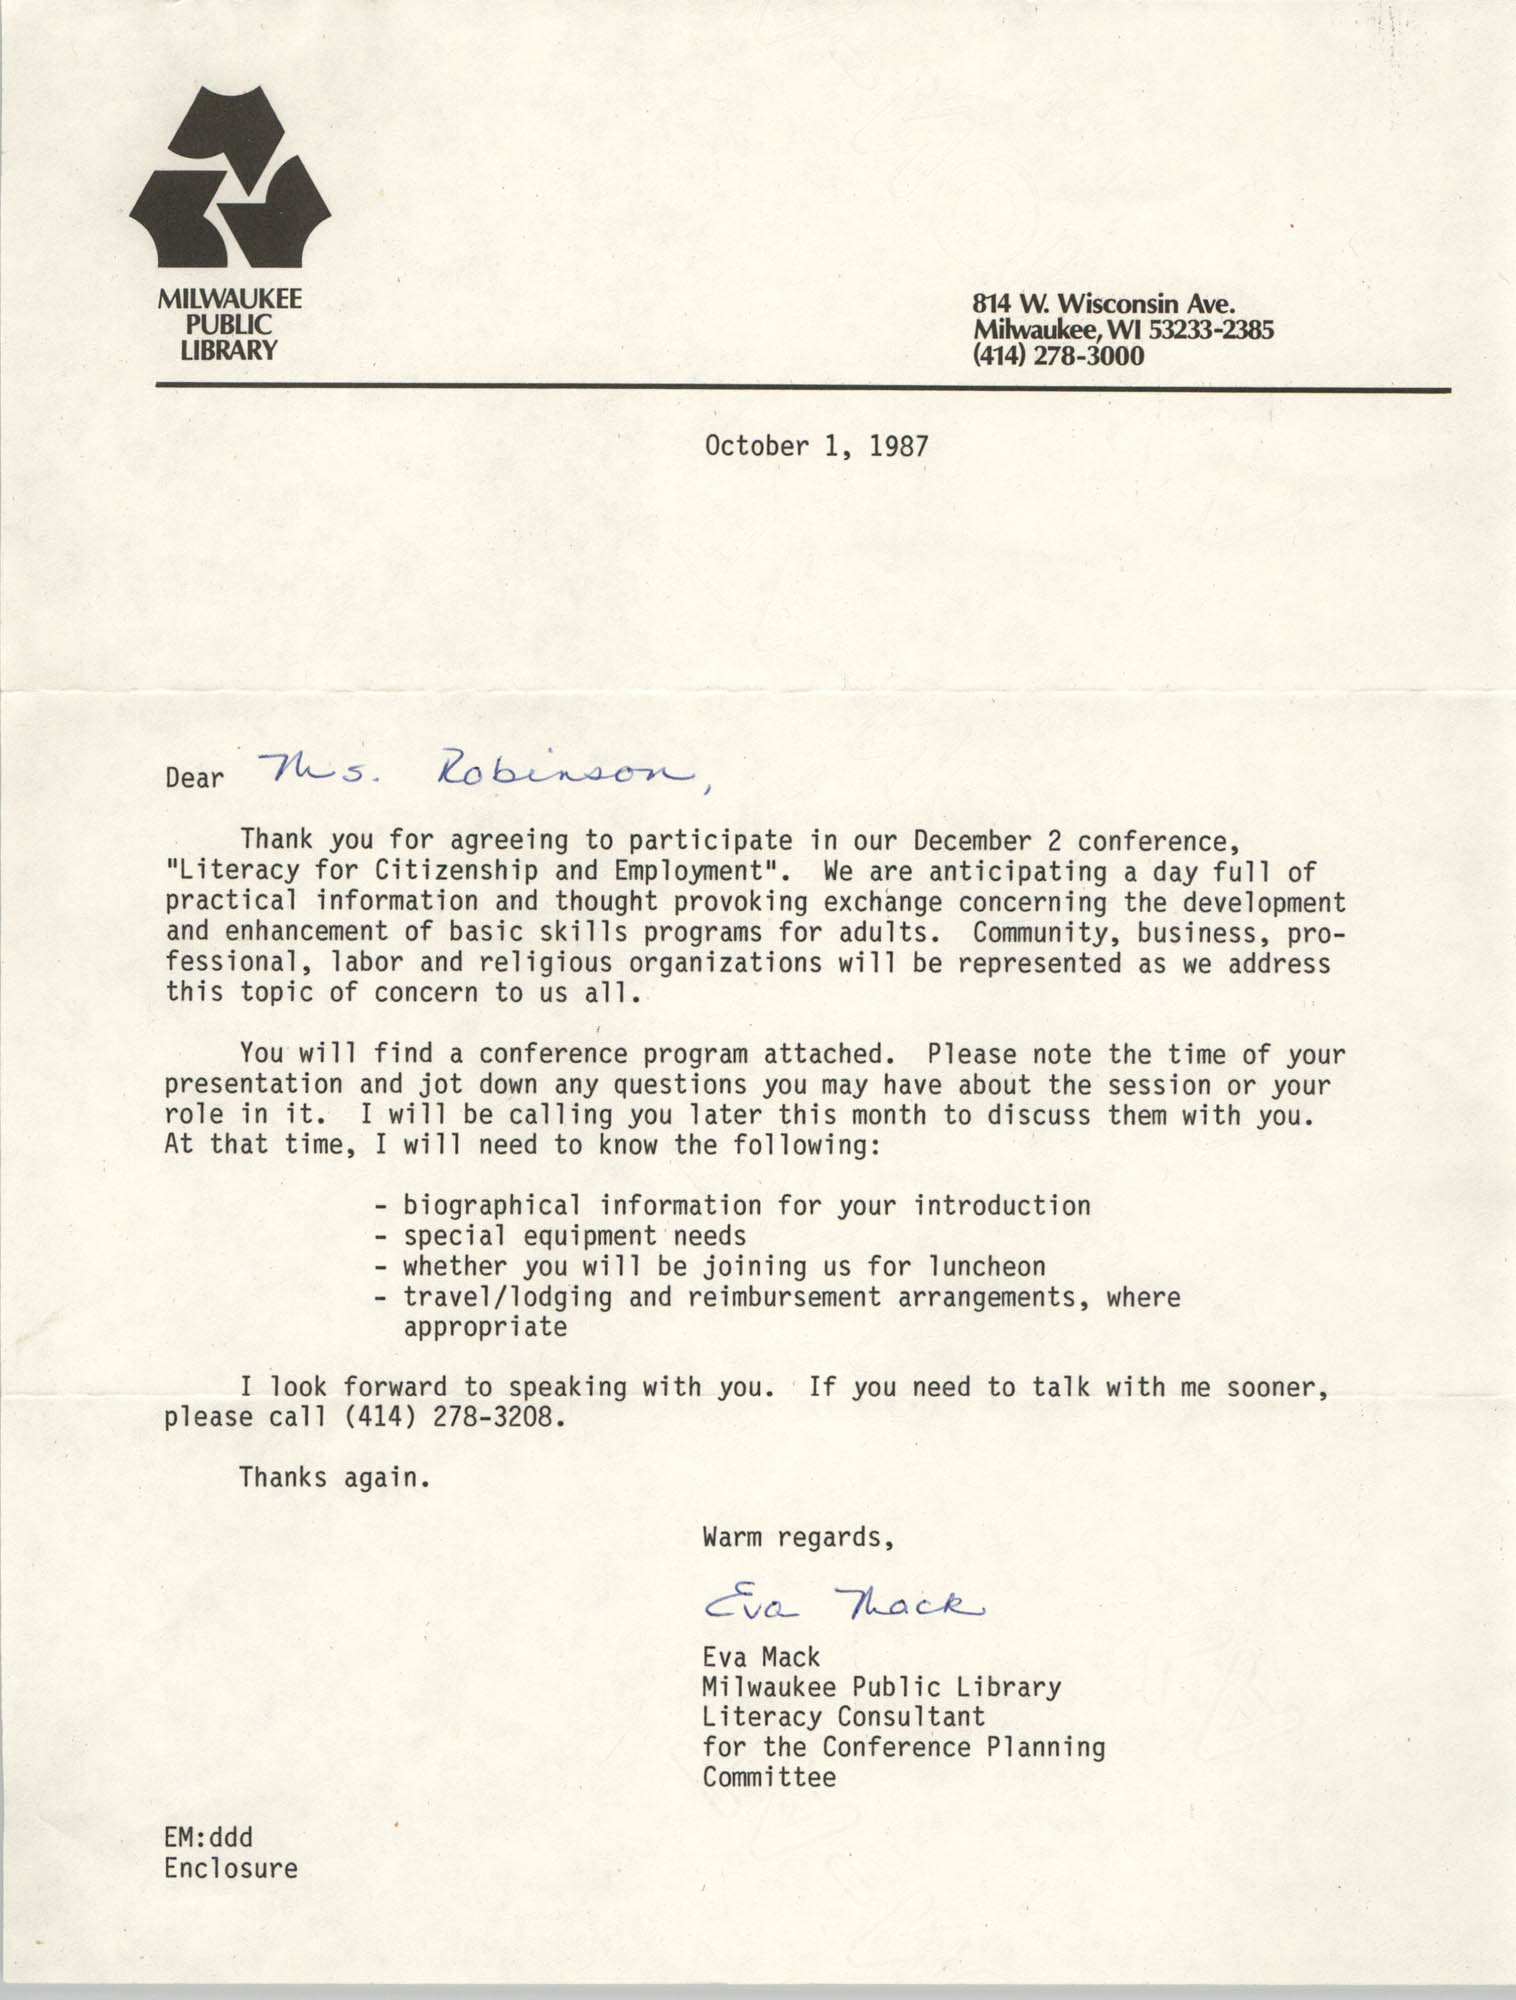 Letter from Eva Mack to Bernice Robinson, October 1, 1987